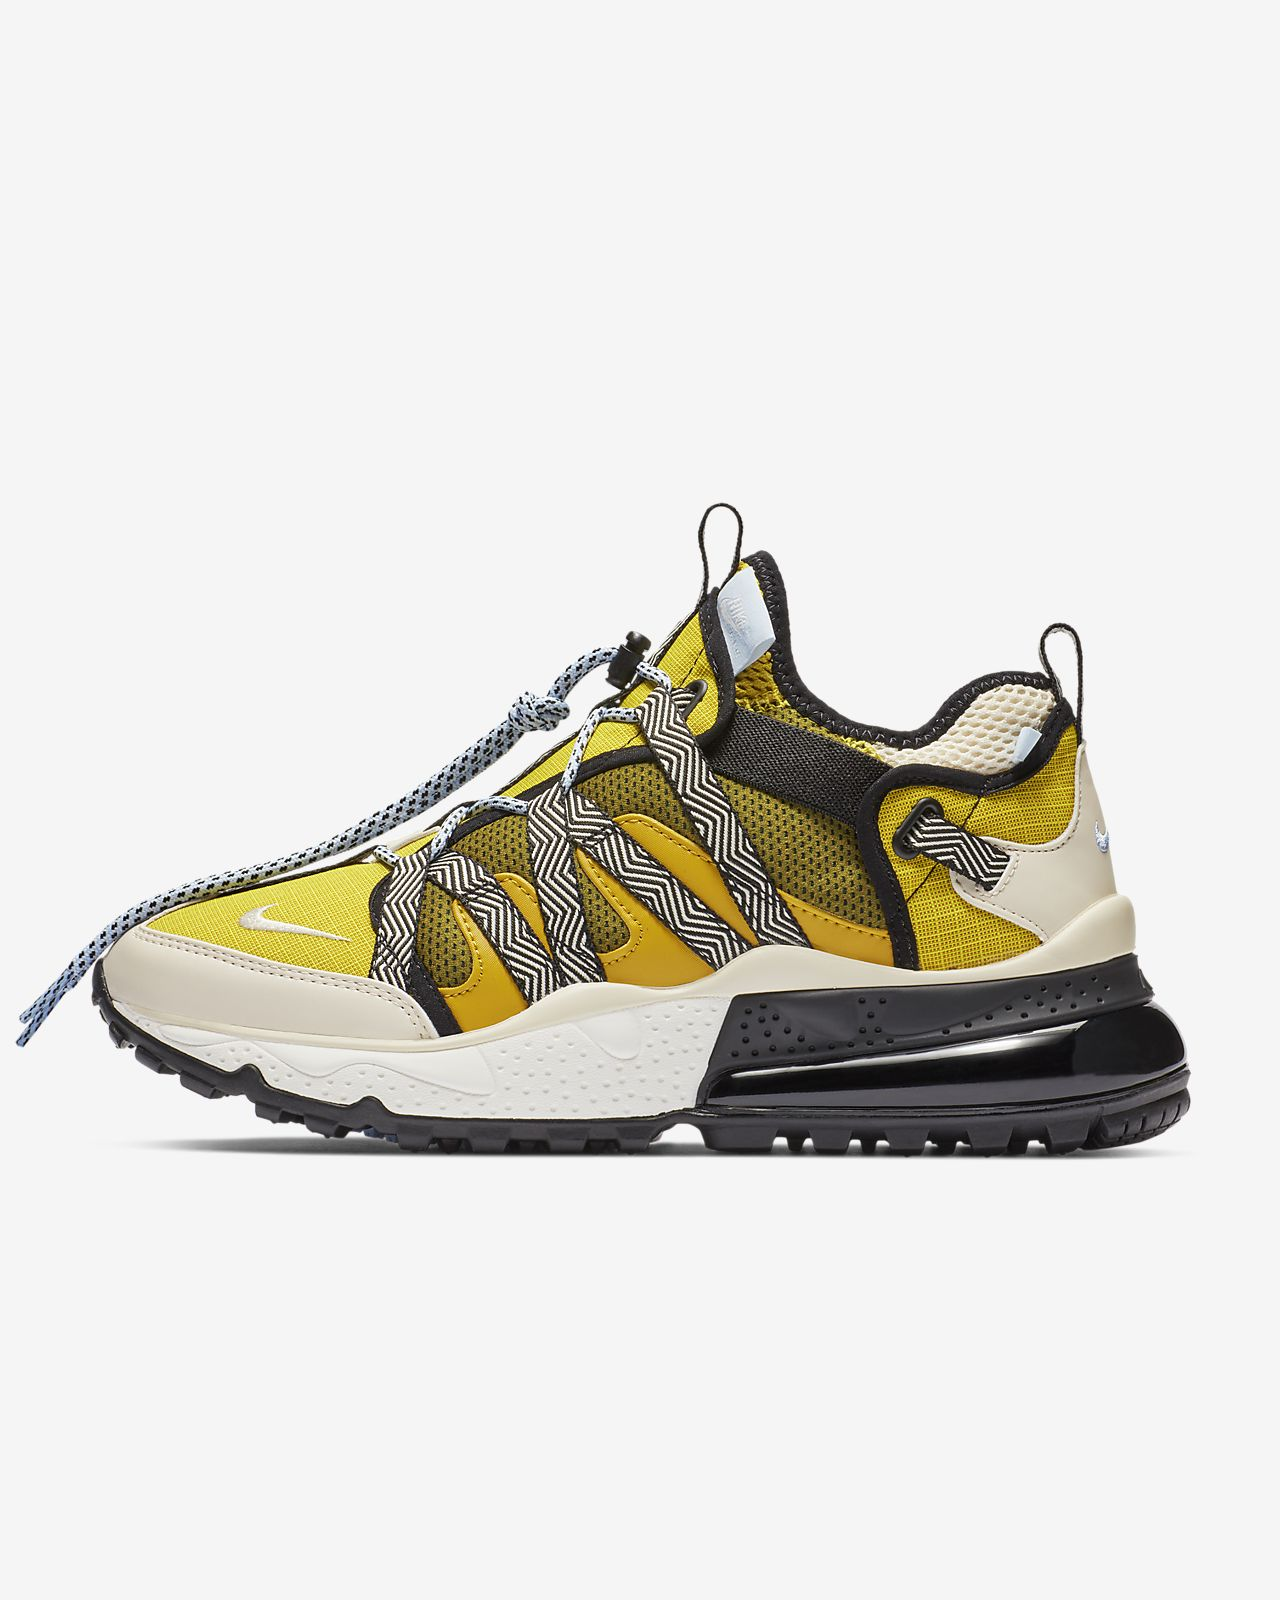 55a5a50e4e6 Nike Air Max 270 Bowfin Men's Shoe